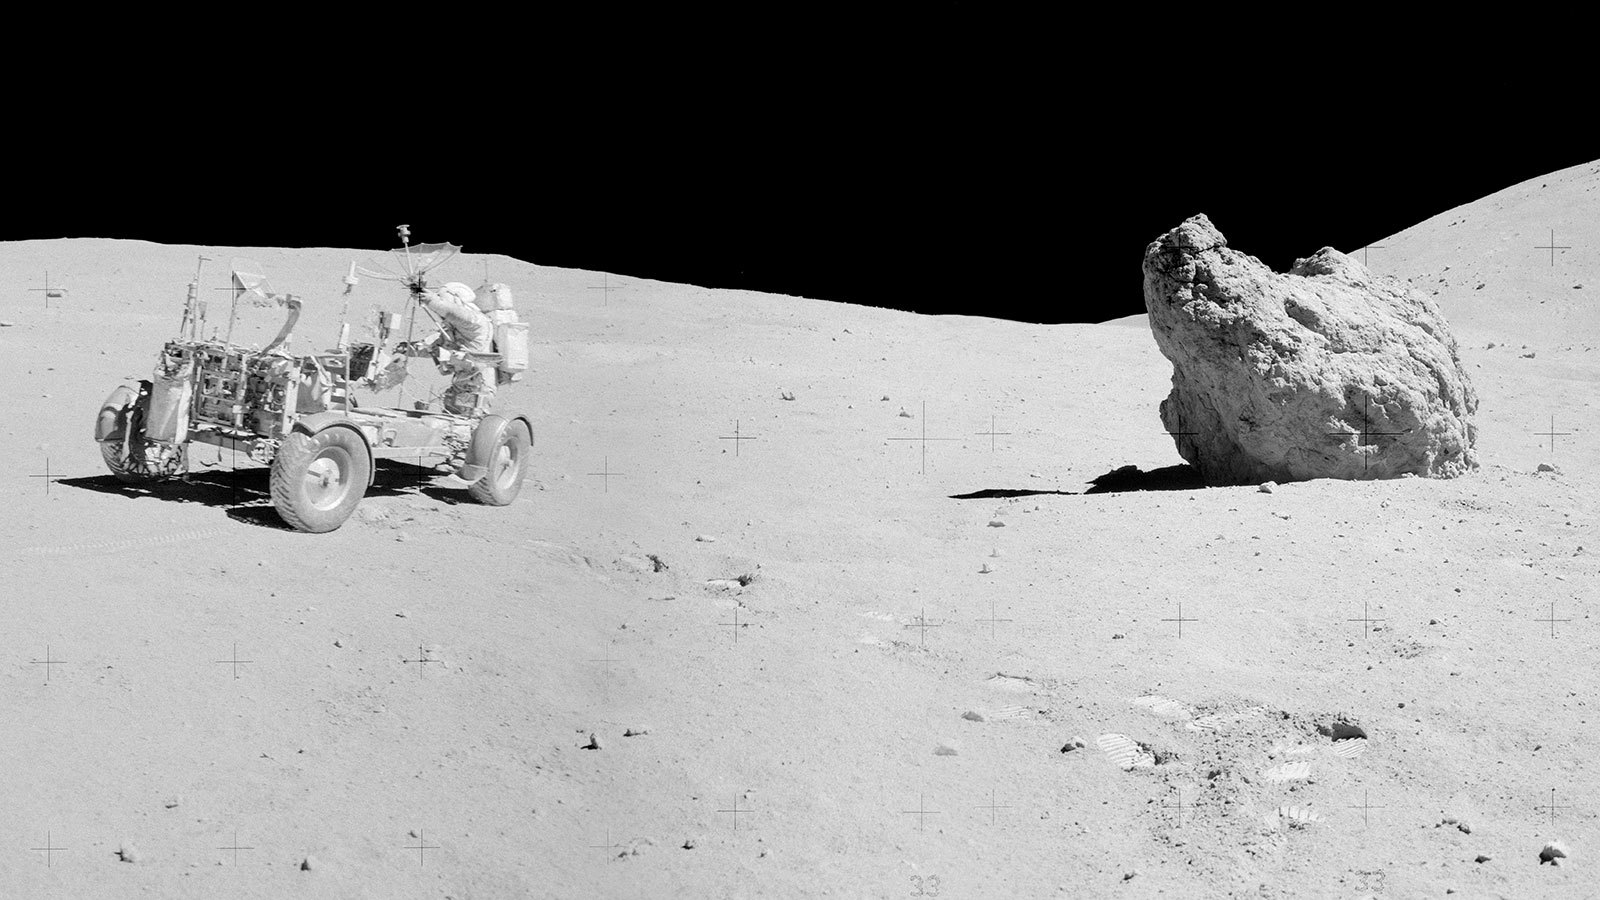 Apollo astronaut, lunar rover and boulder on the Moon.